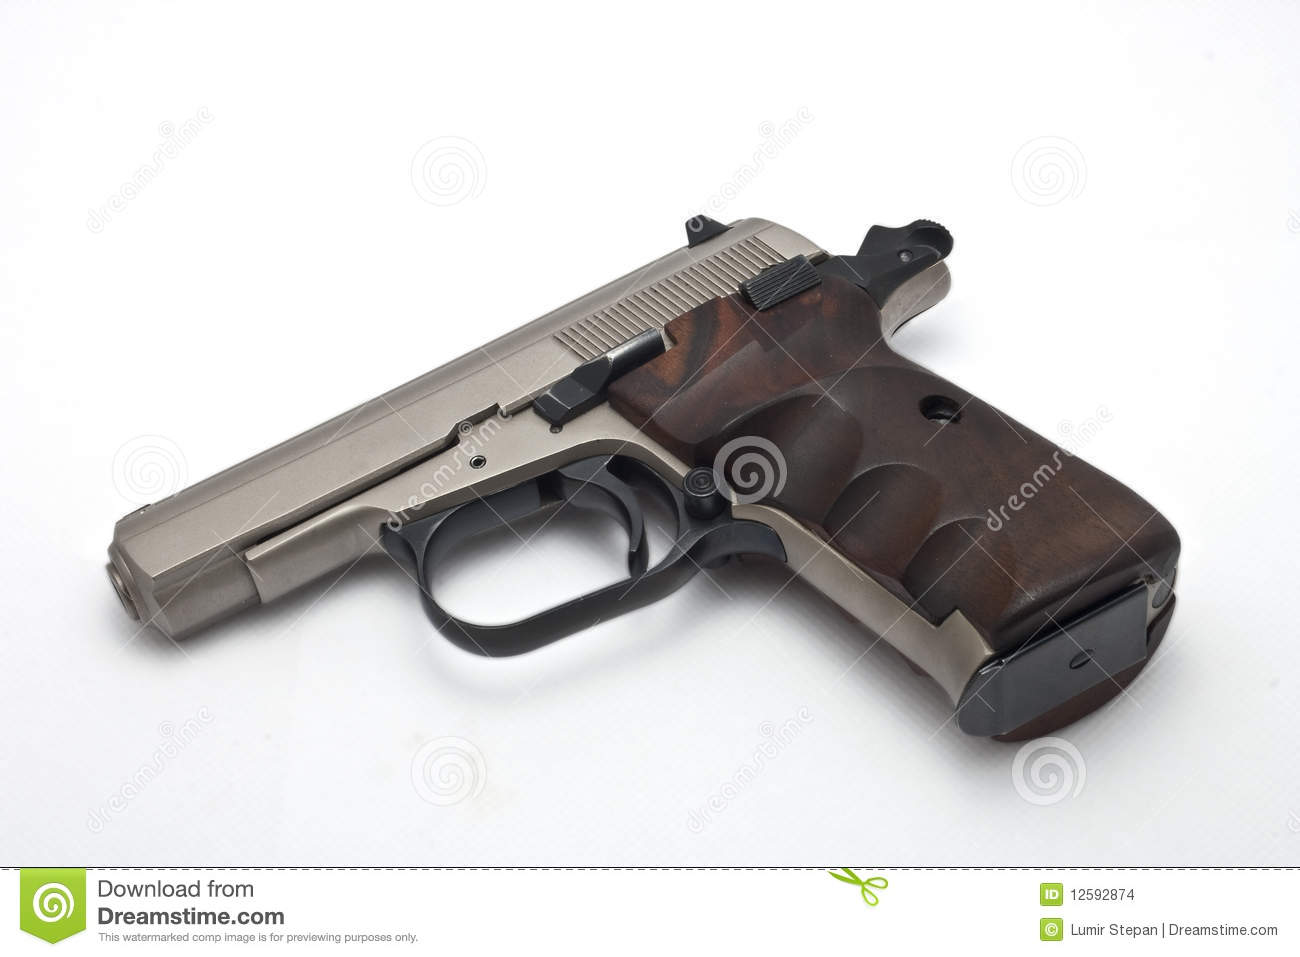 gun white background - photo #23